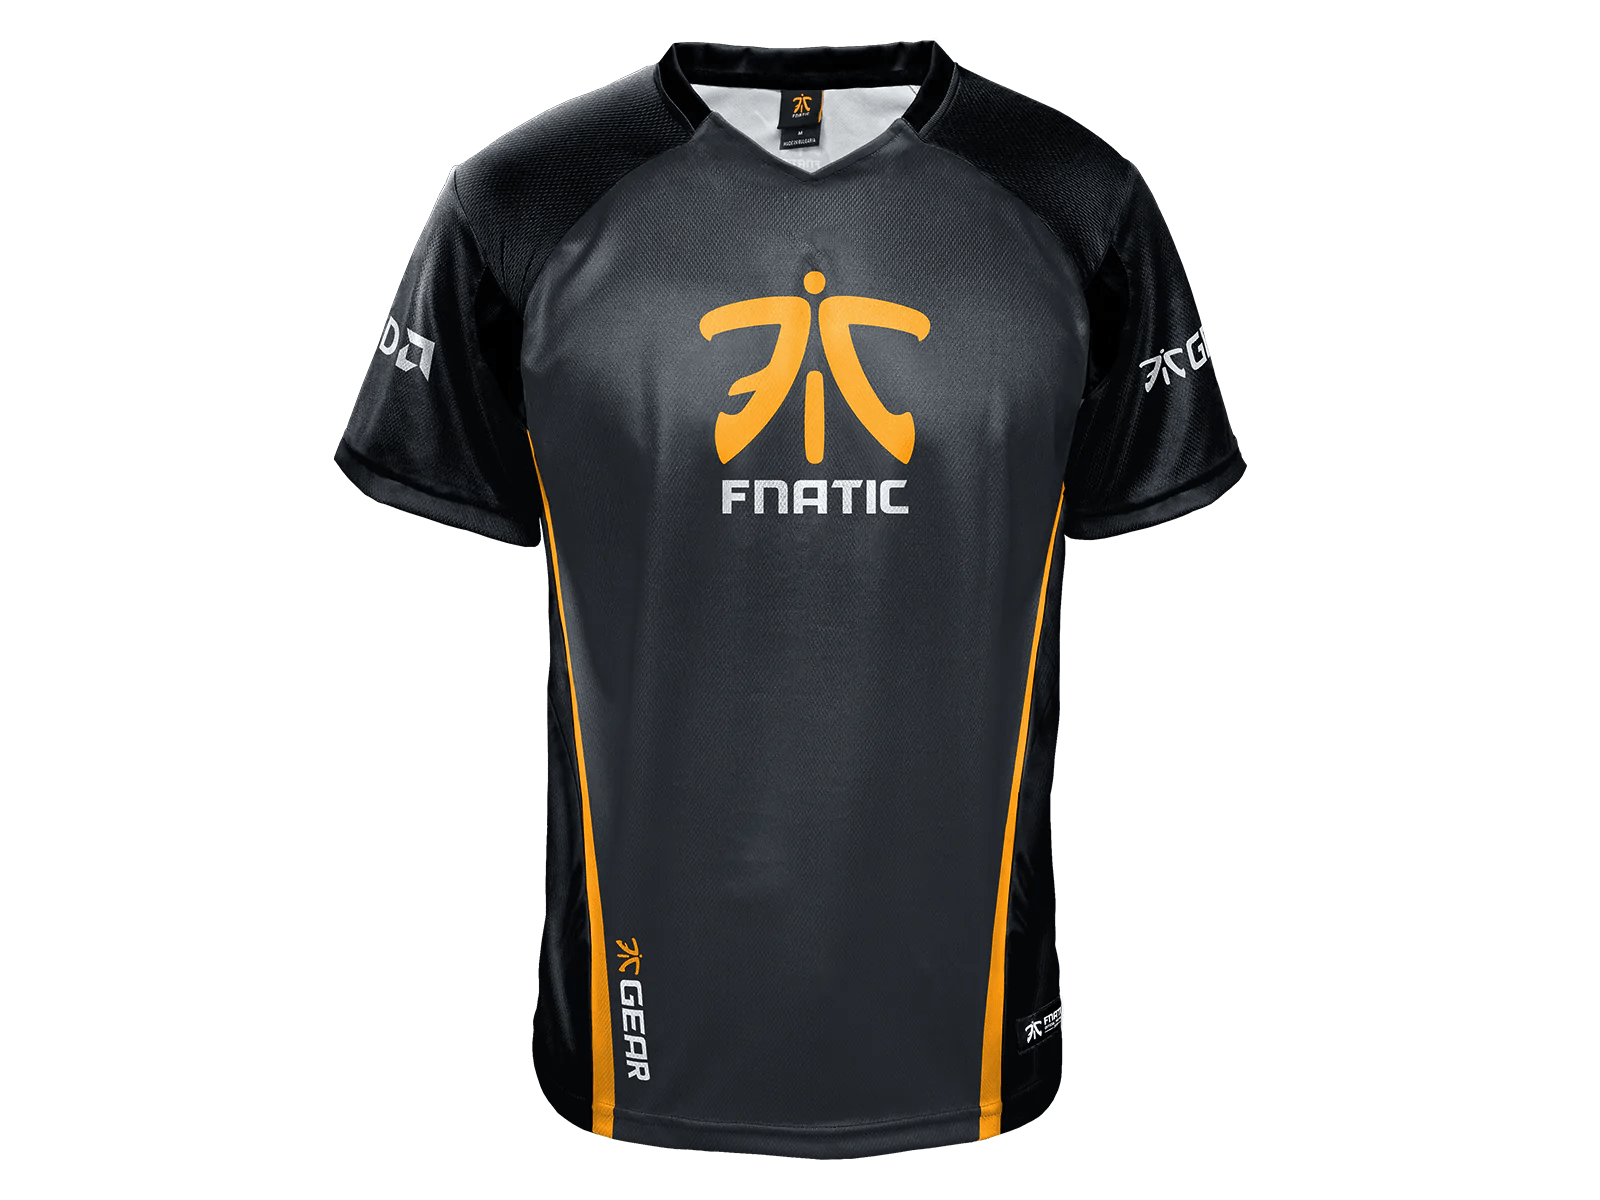 Fauteuils Quersus Top Fnatic Male Player Jersey Fnatic Male Player Jersey